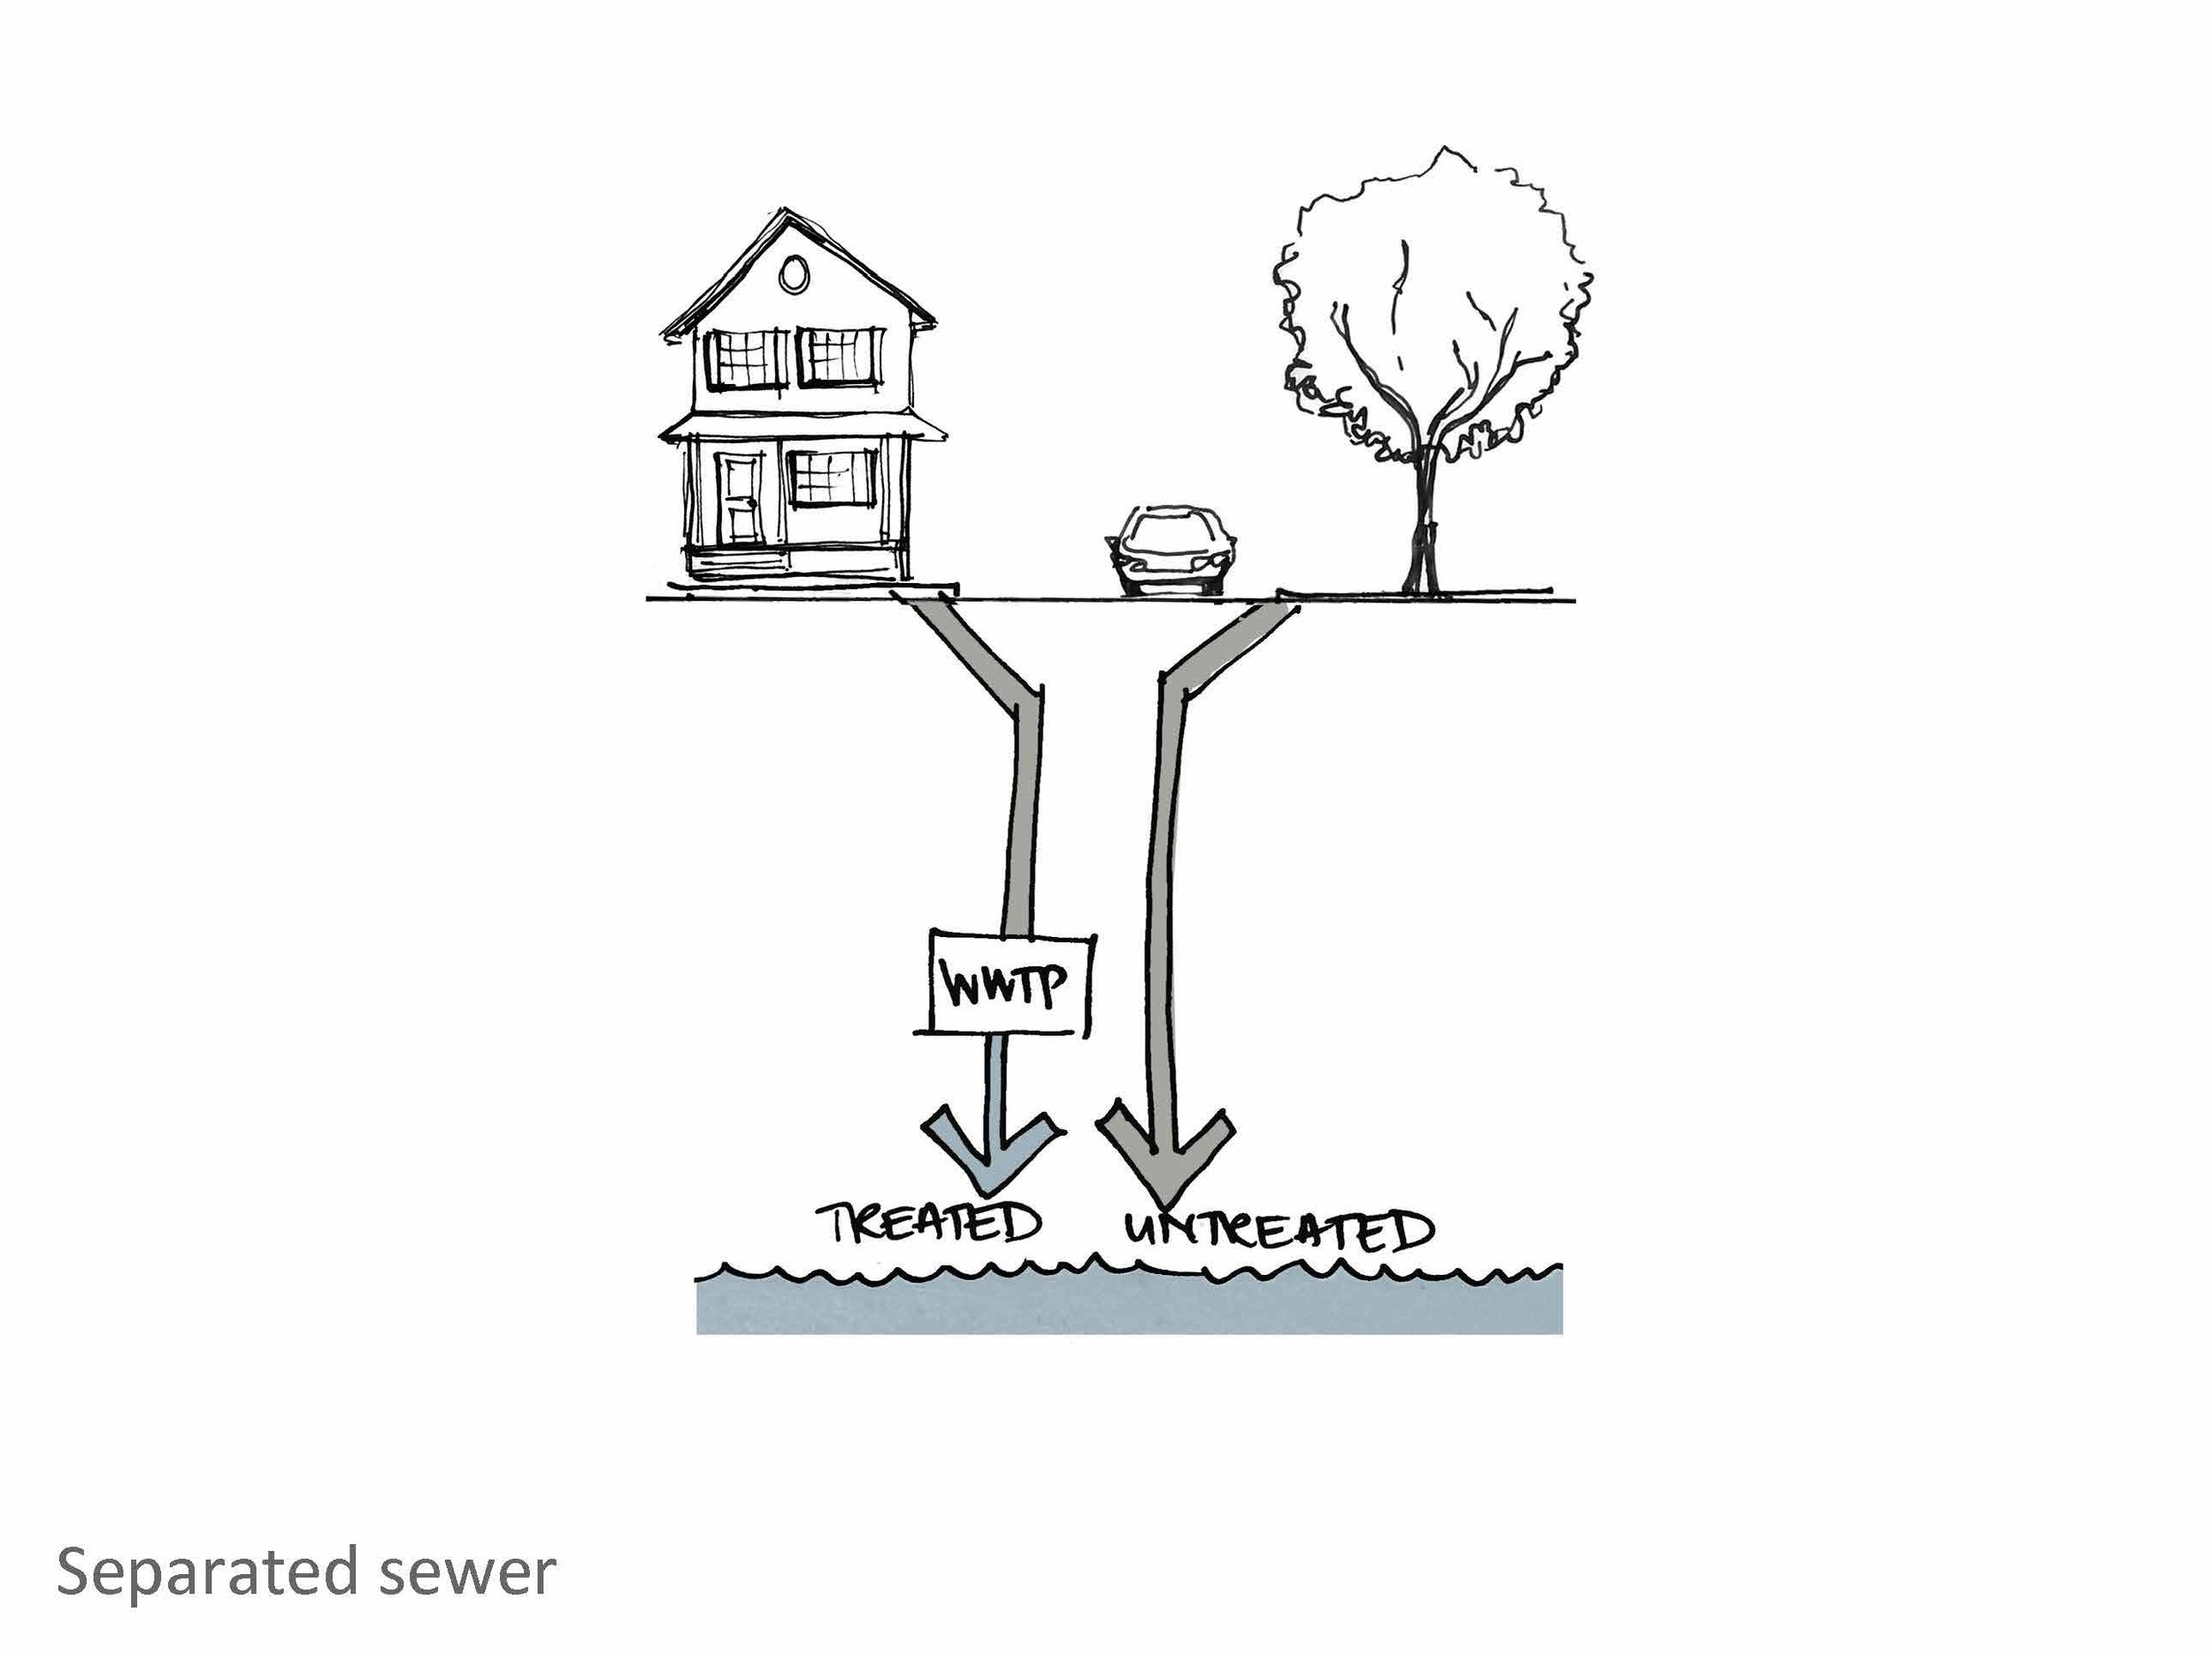 The problem with sewer separation